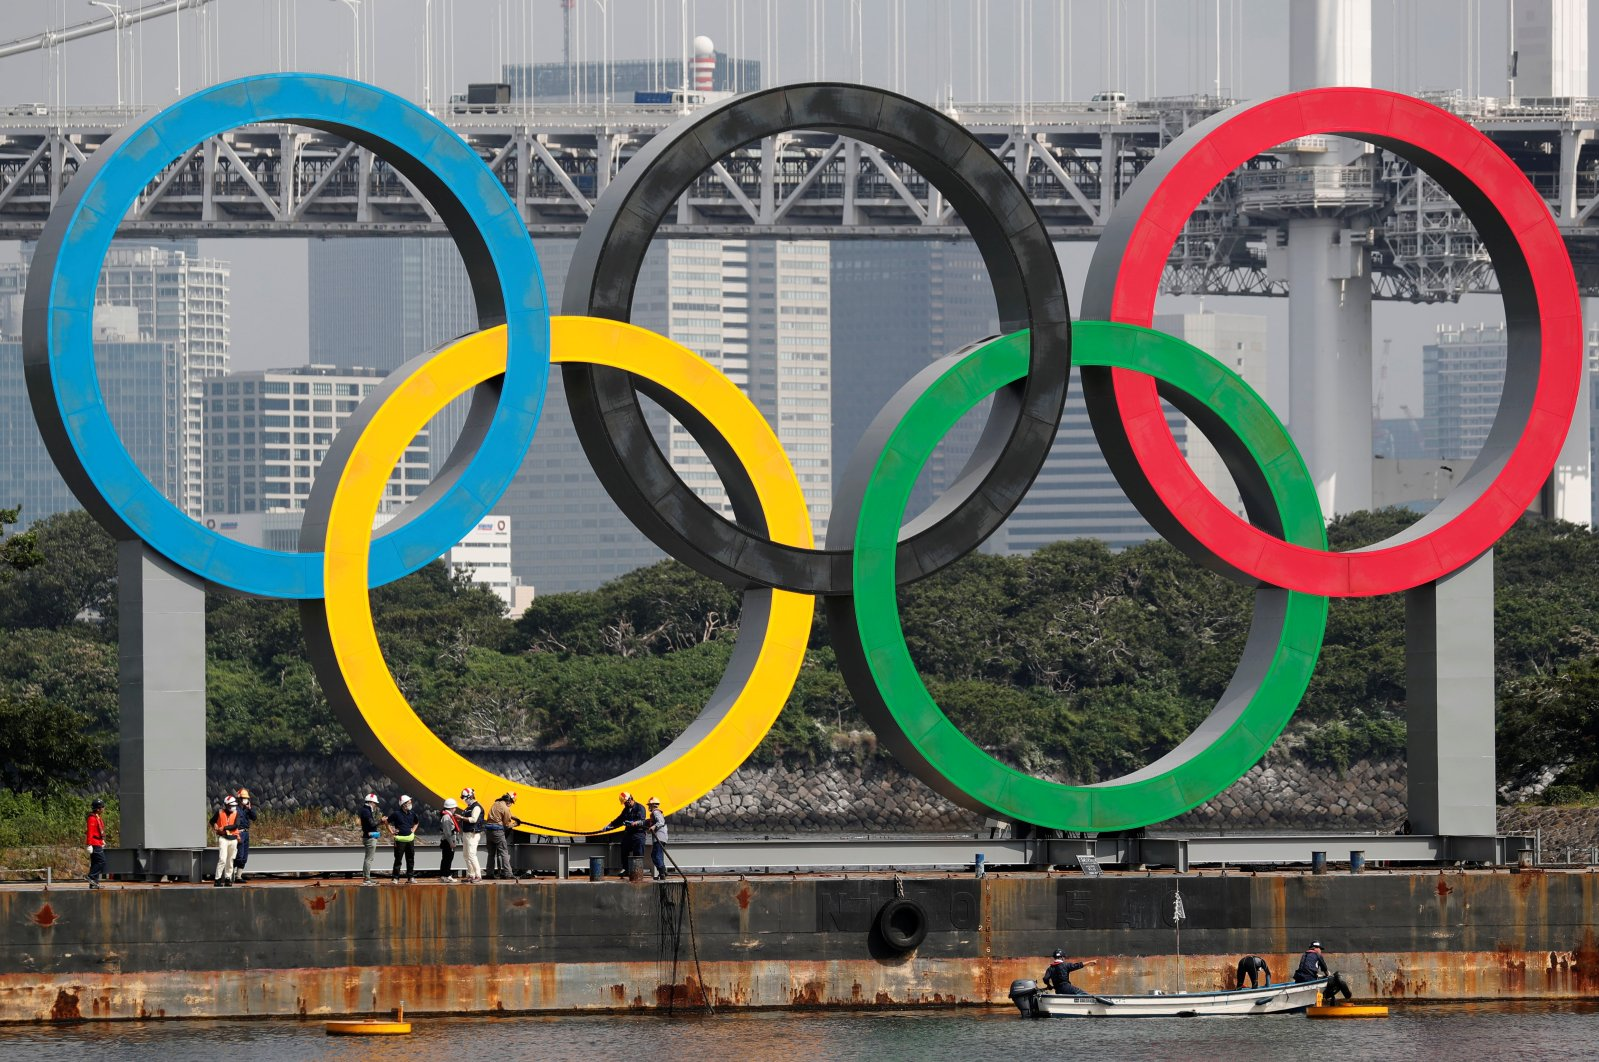 Workers prepare to carry the giant Olympic rings, which are being temporarily removed for maintenance, at the waterfront area at Odaiba Marine Park in Tokyo, Japan, Aug. 6, 2020. (Reuters Photo)